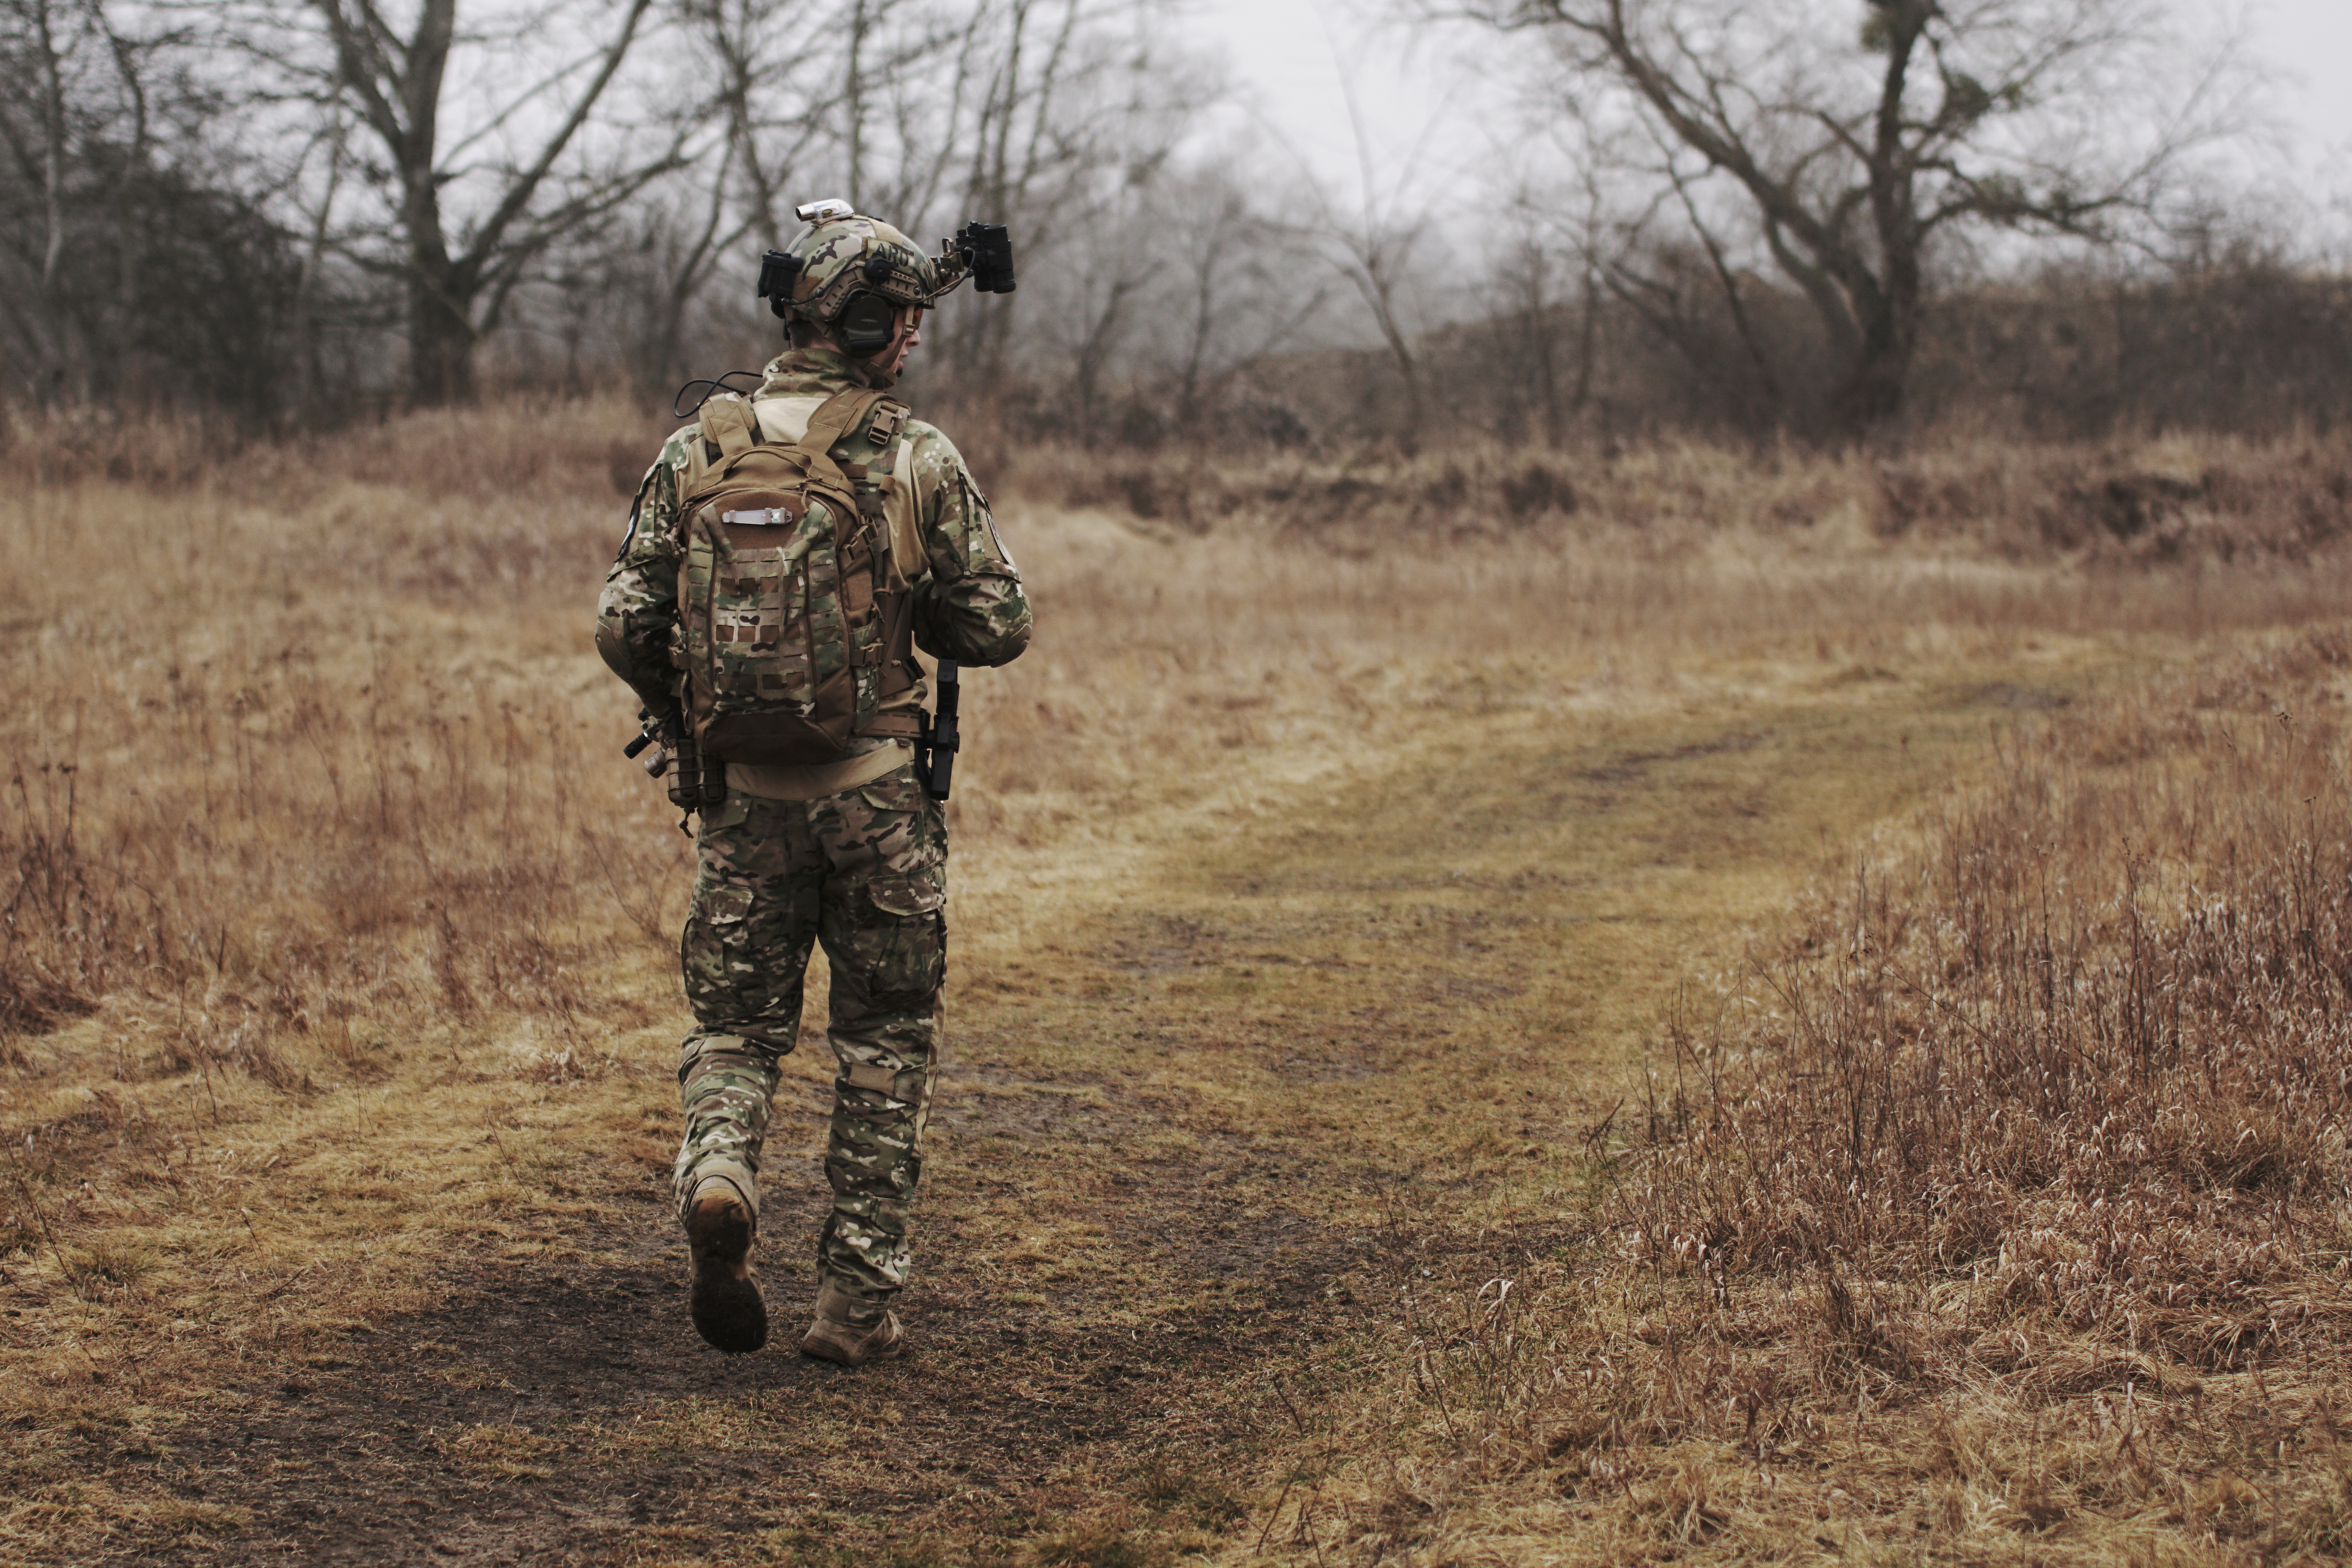 Man Wearing Military Uniform and Walking through Woods